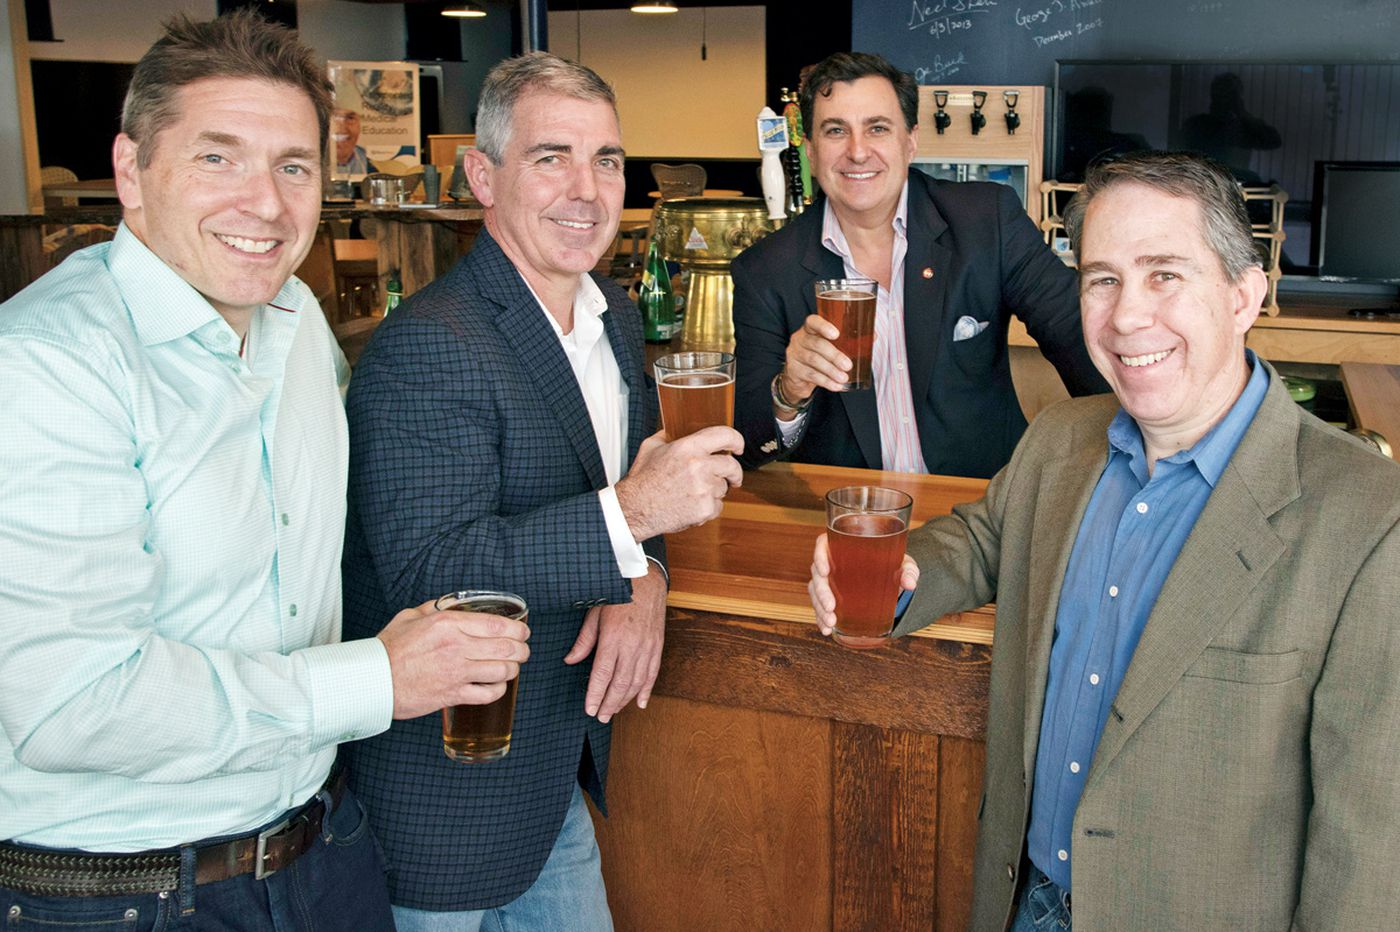 Philly-area start-up aims to put a sensor on the tap to measure beer drinking